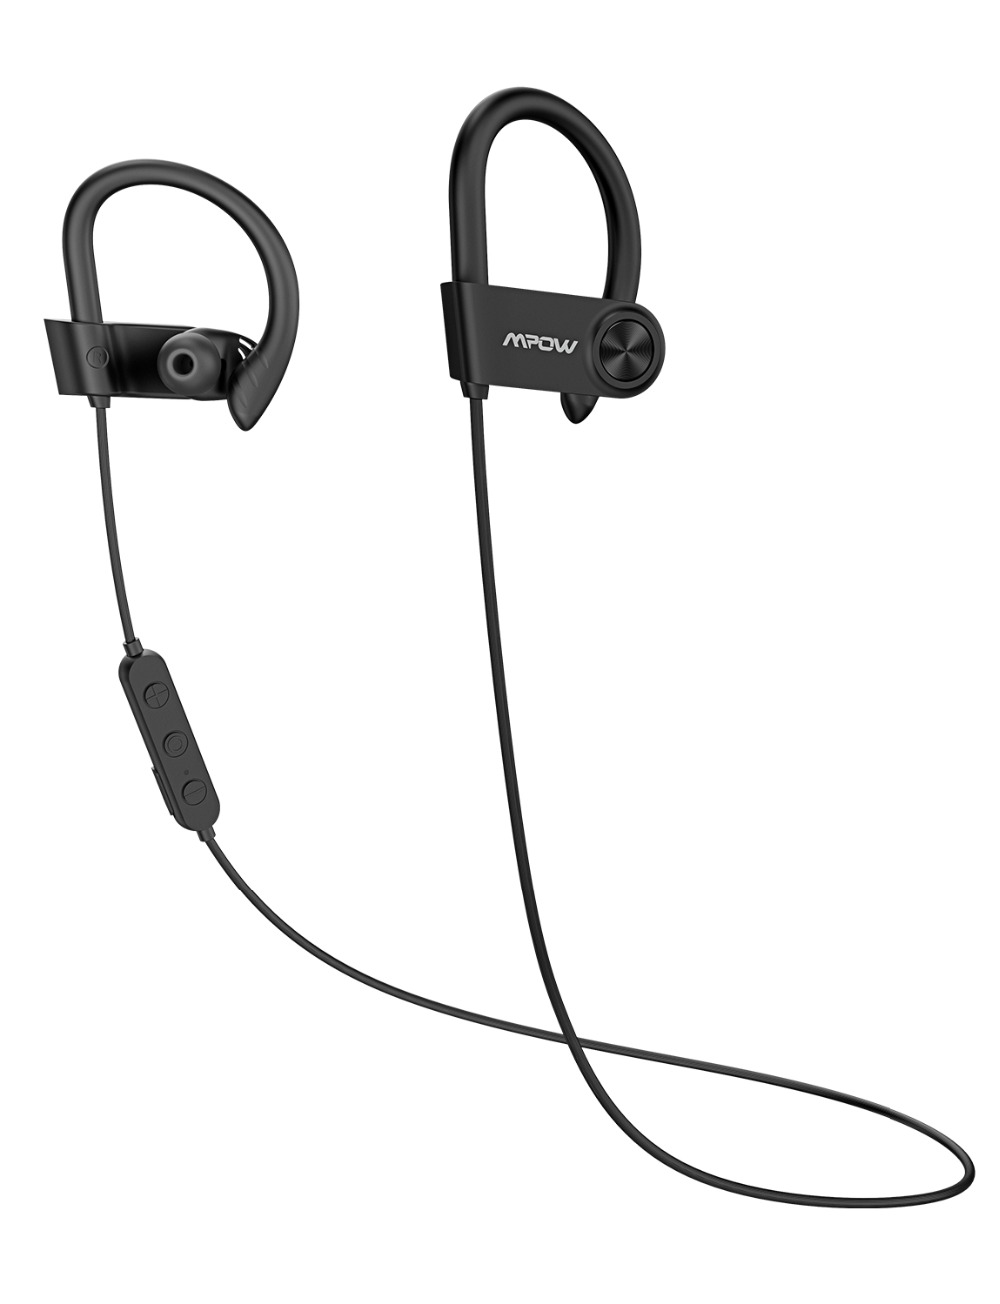 Mpow D9 Bluetooth 5.0 Earphone Aptx Wireless Sport Headphone With IPX7 Waterproof Noise Cancelling Mic 18H Playtime For Running (8)